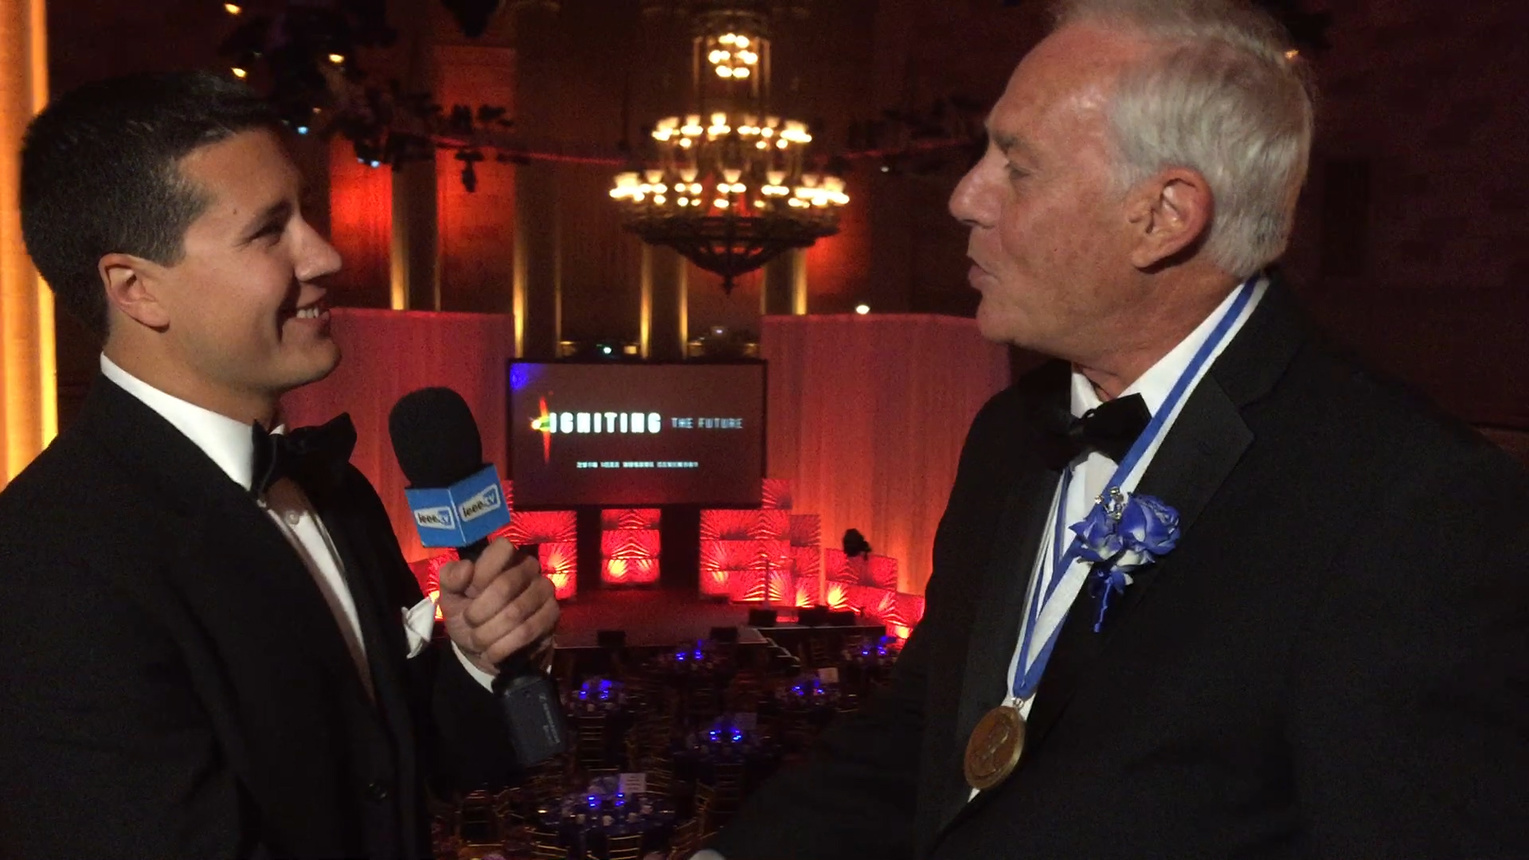 Roberto Padovani - IEEE Honors Ceremony 2016 Red Carpet Interview